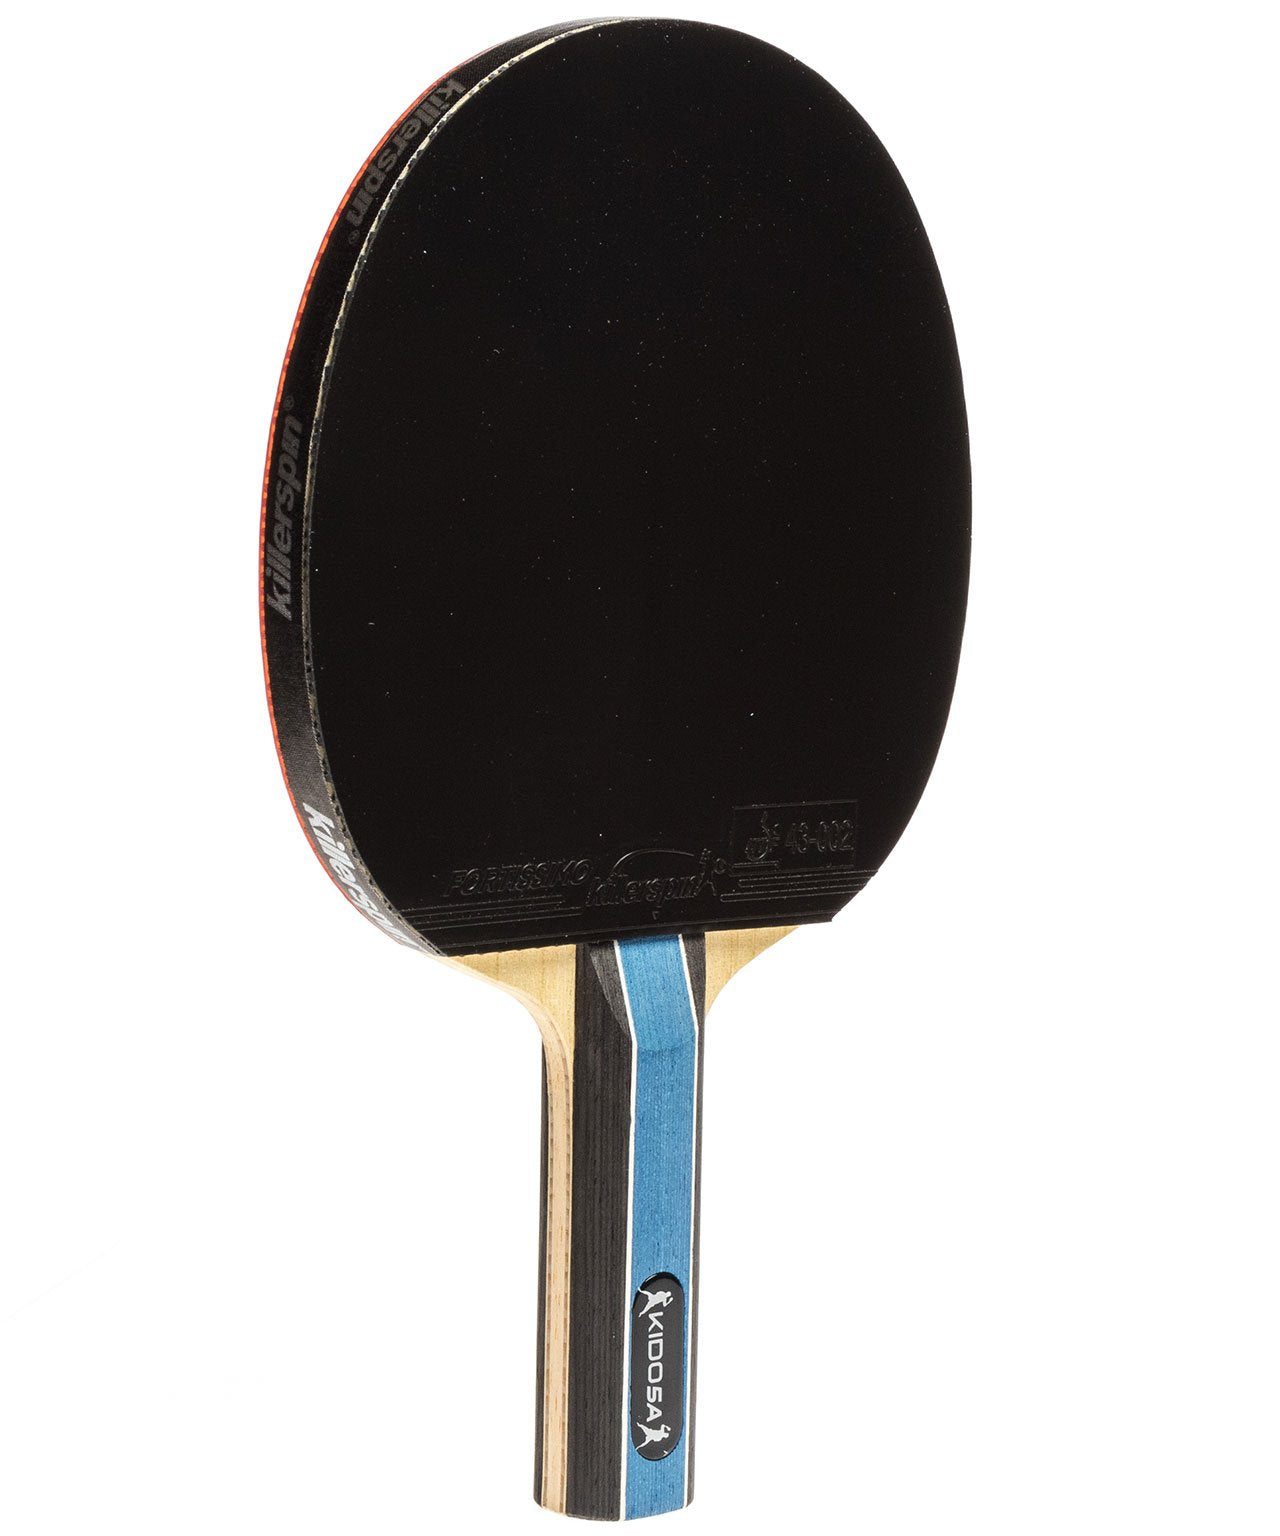 Killerspin Ping Pong Paddle Kido 5A RTG Premium - Straight Black Fortissimo Rubber